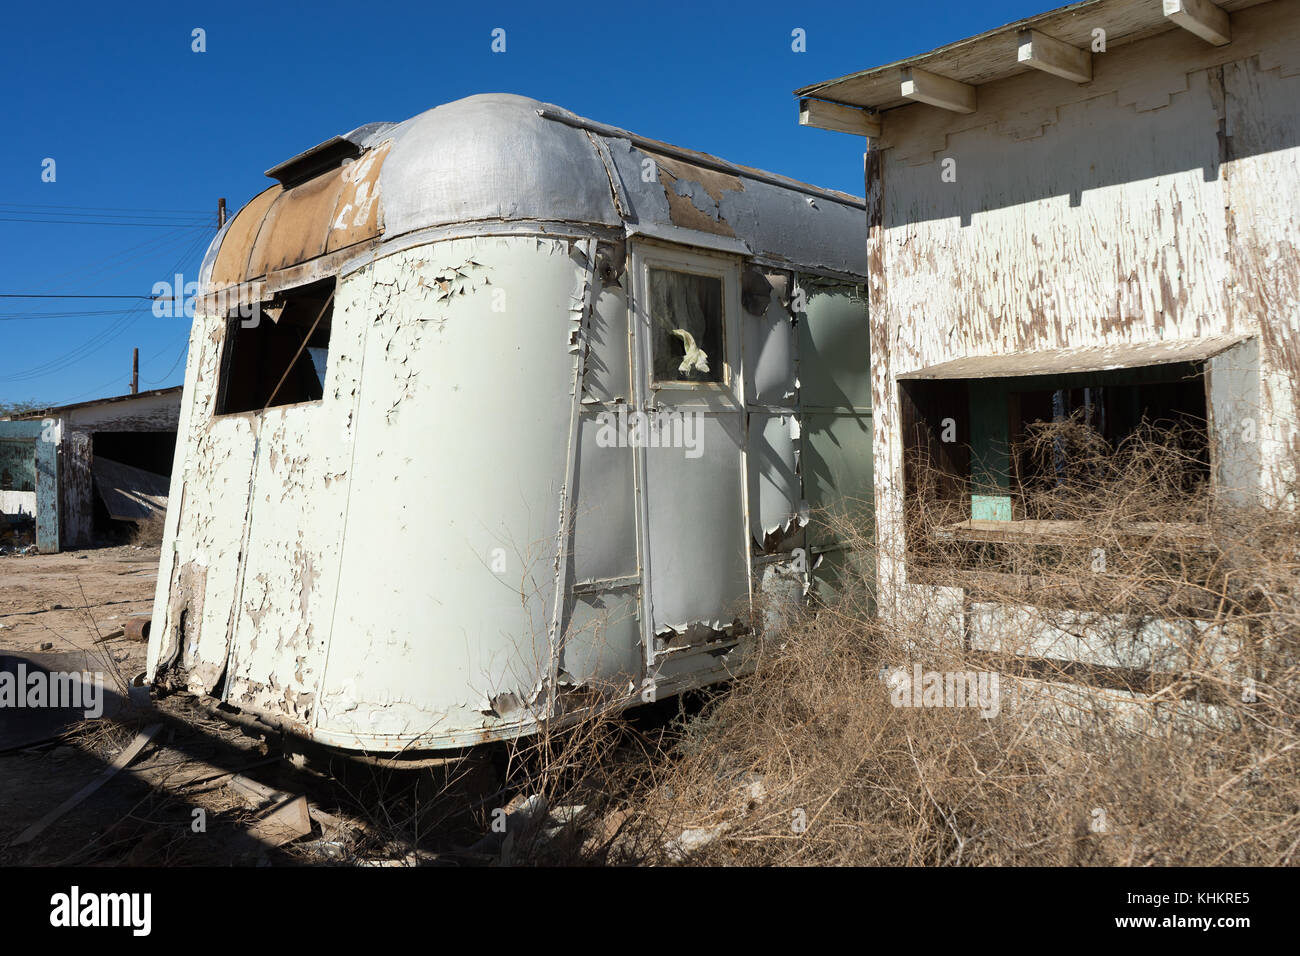 abandoned trailer in Bombay Beach California - Stock Image